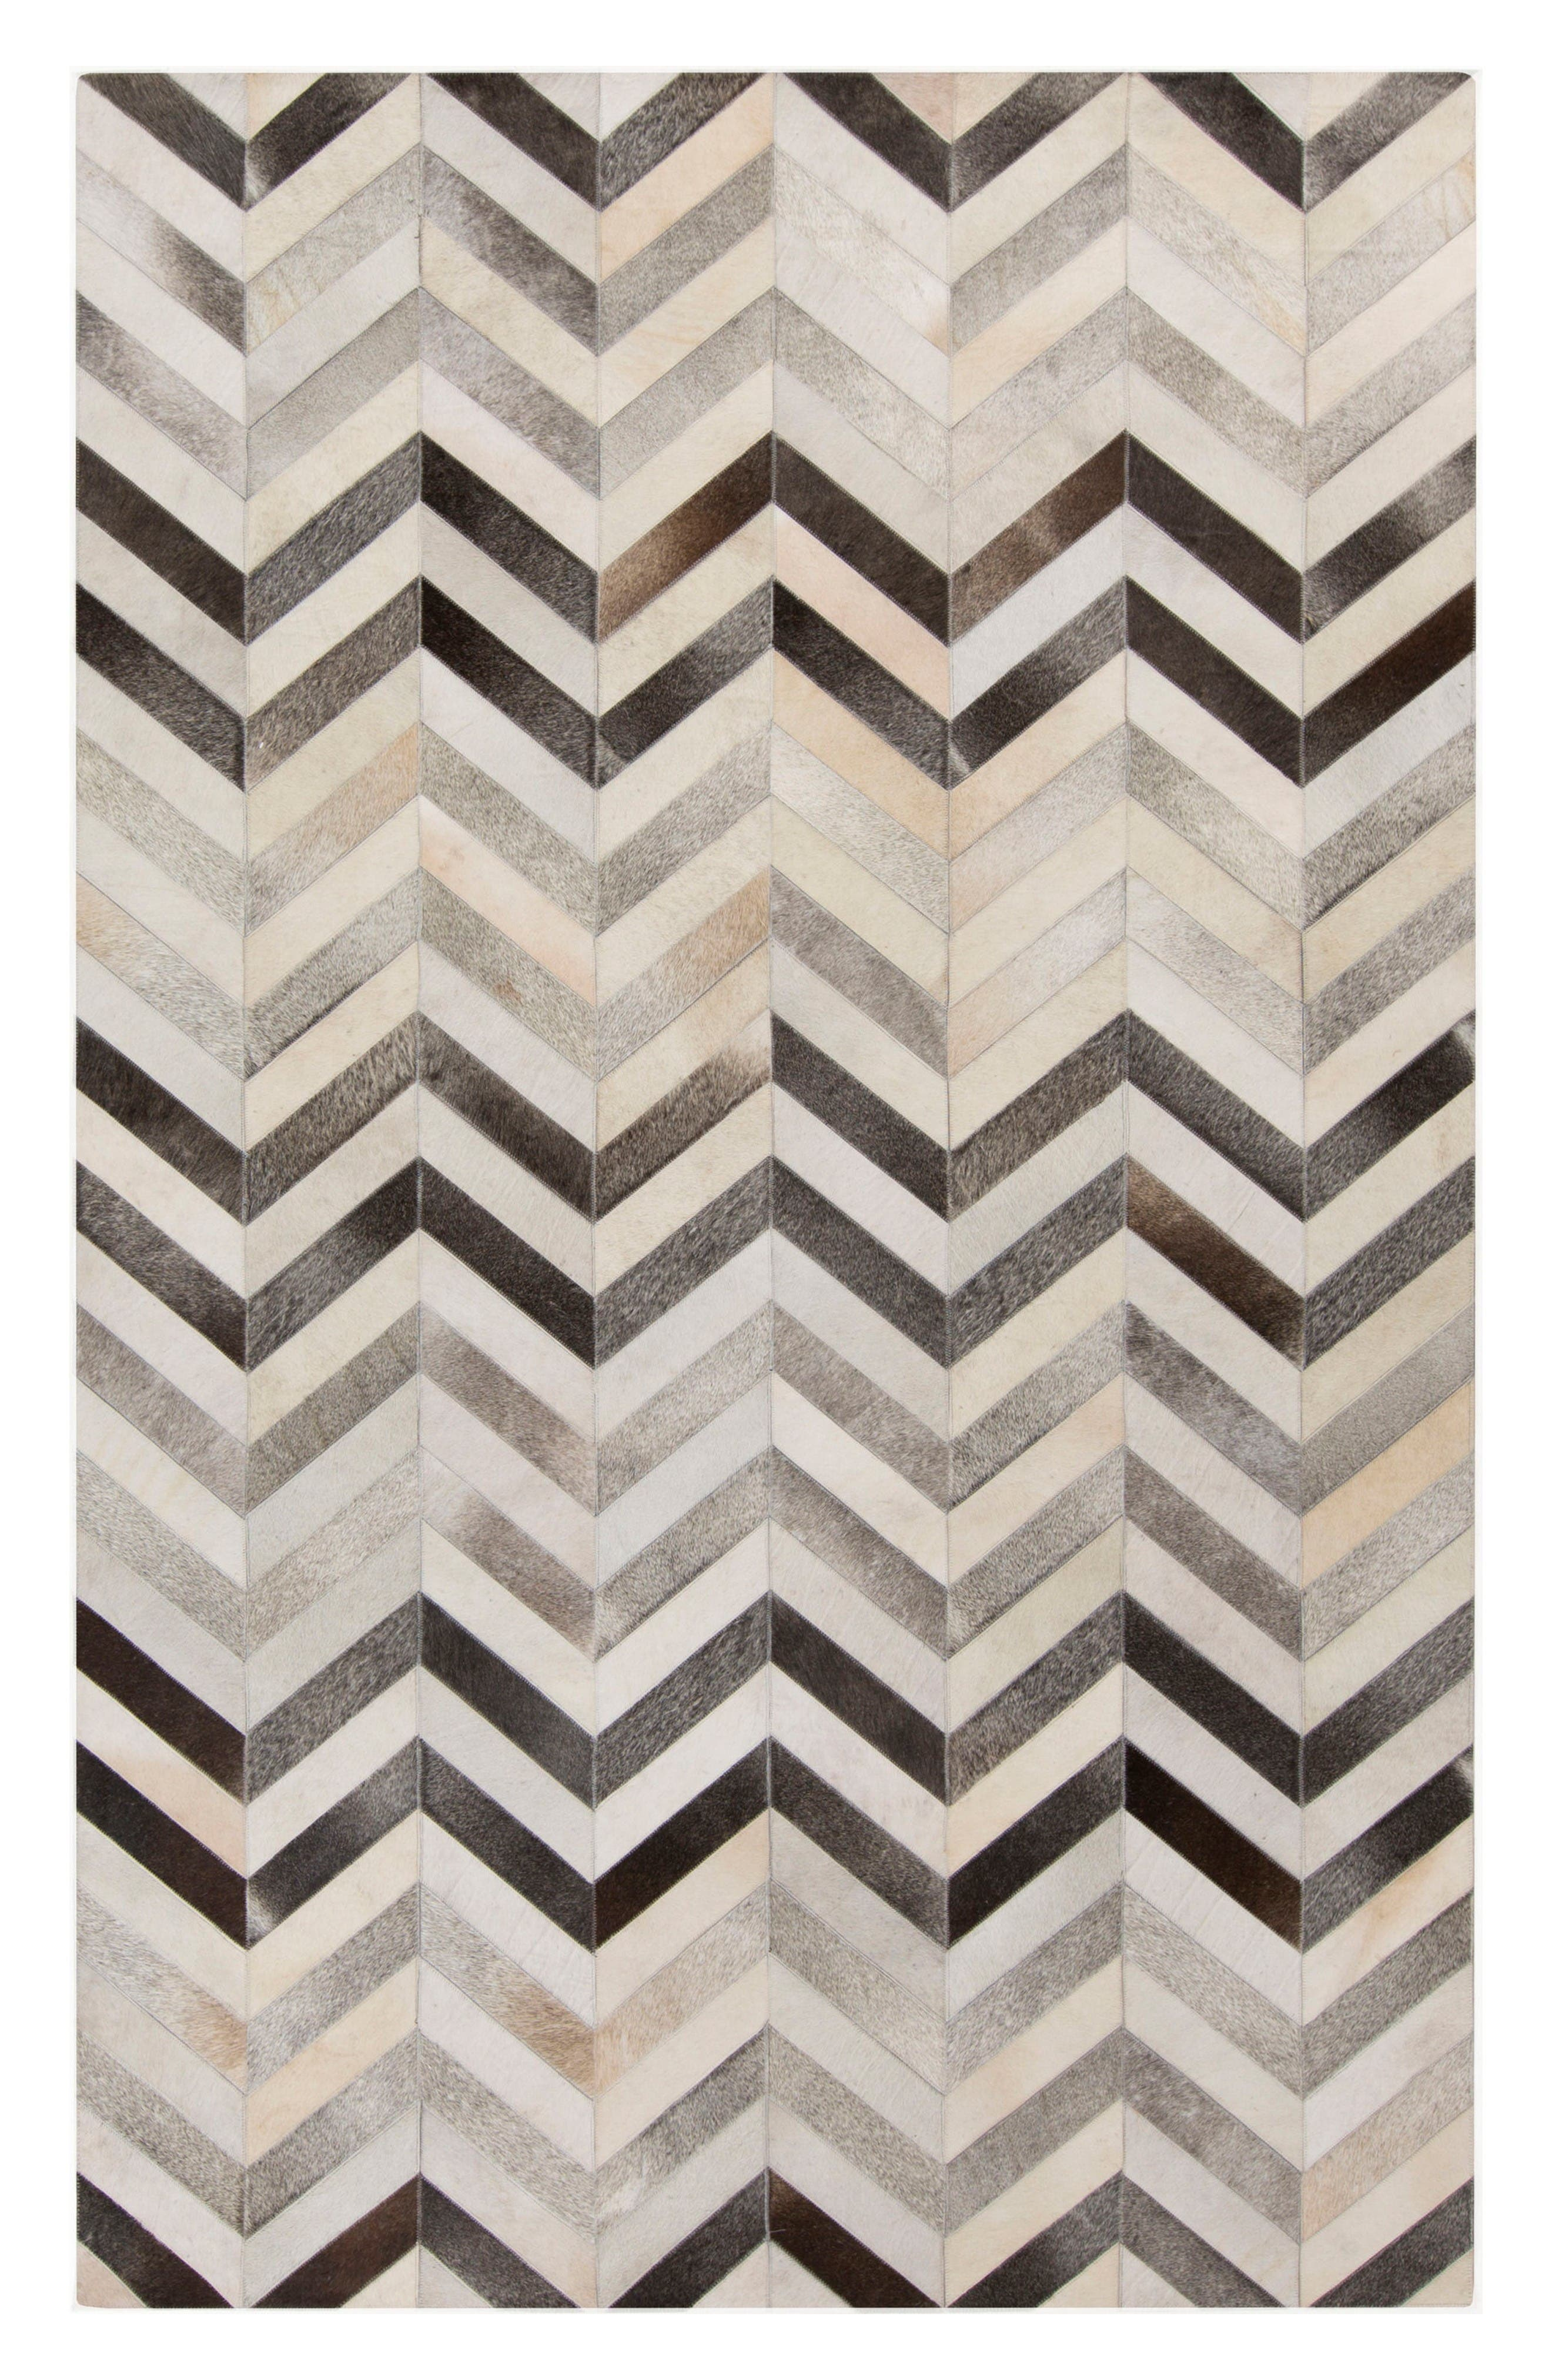 Alternate Image 1 Selected - Surya Home Trail Chevron Hand Stitched Calf Hair Rug